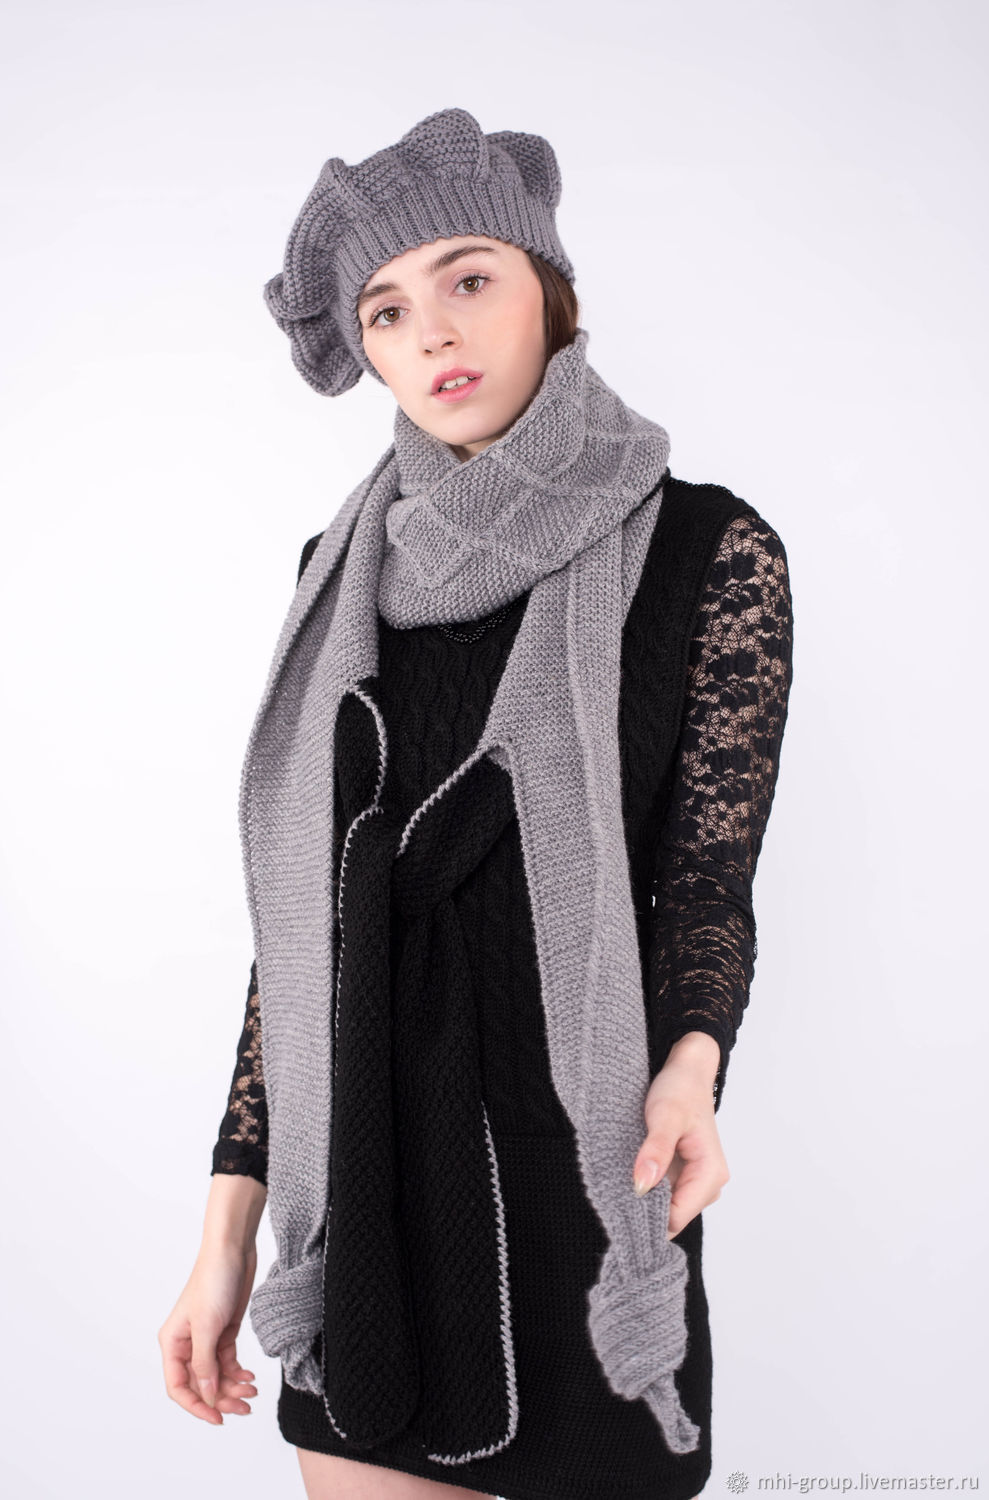 Takes out 100% smooth wool yarn-Turkish production on the elastic long scarf. Made in the technique of hand knitting.